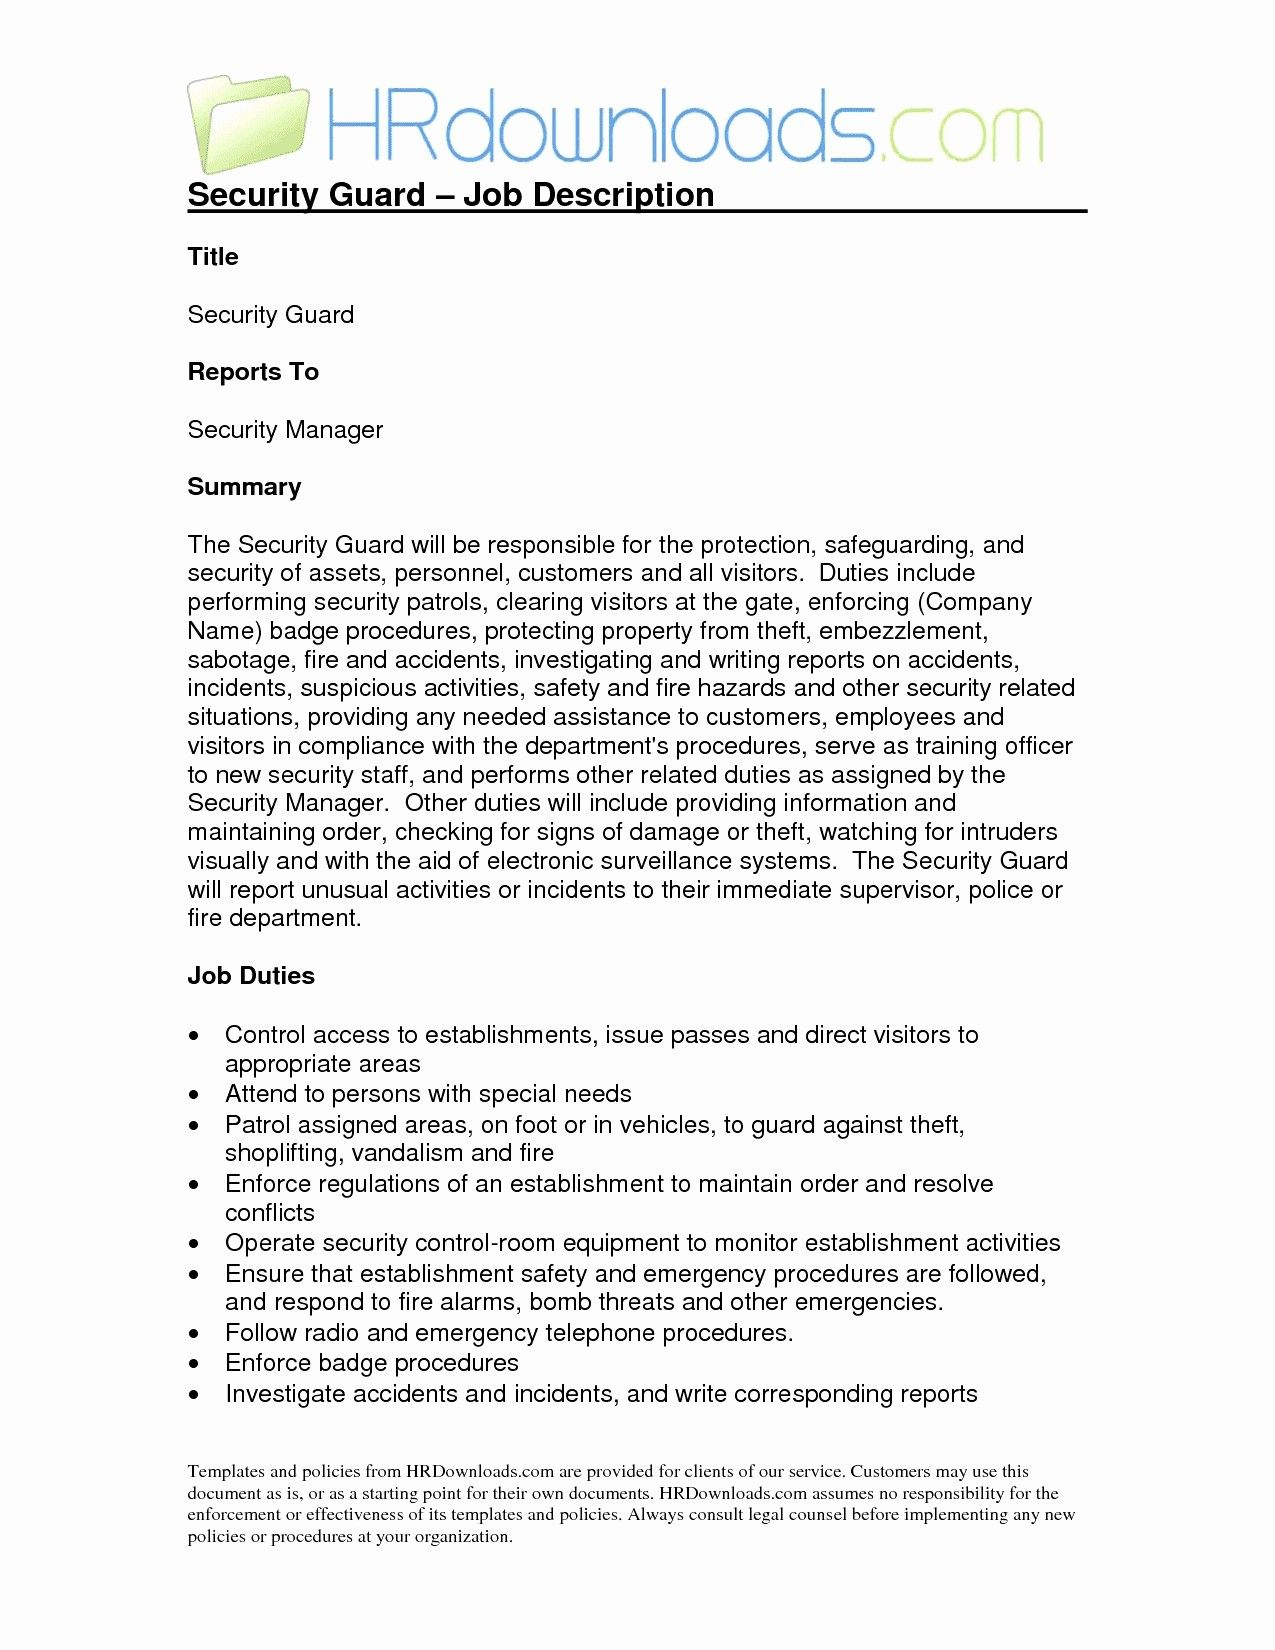 Pin by Waldwert Site on Resume Formats | Security report